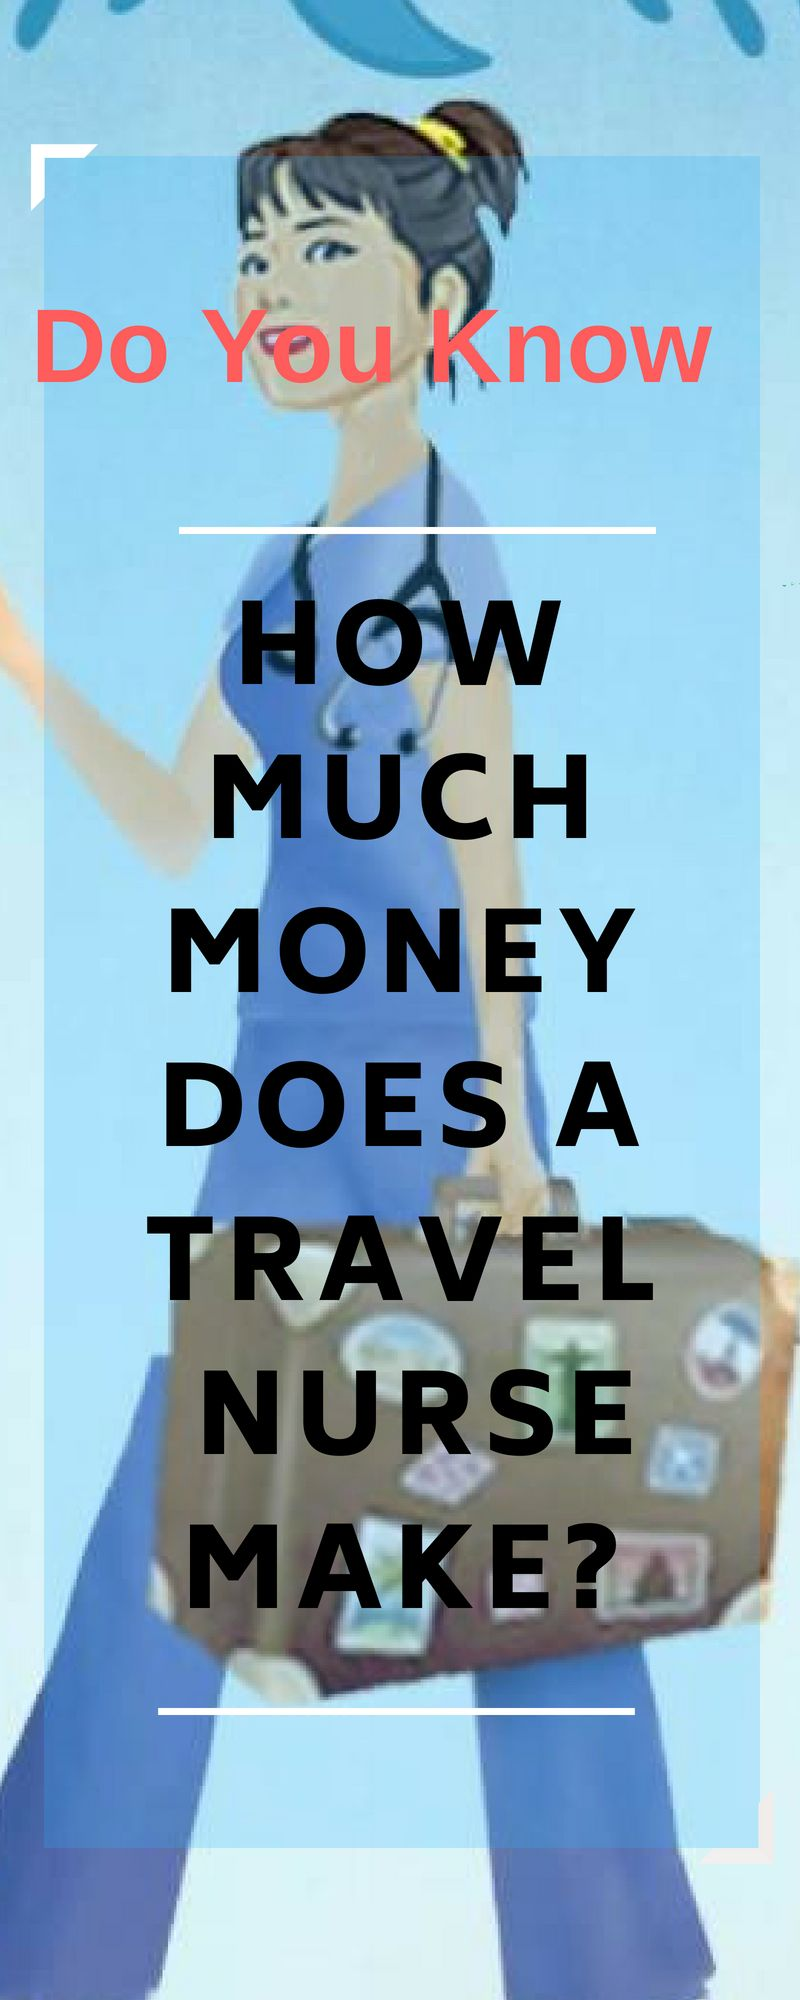 How much do travel nurses make learn more about travel